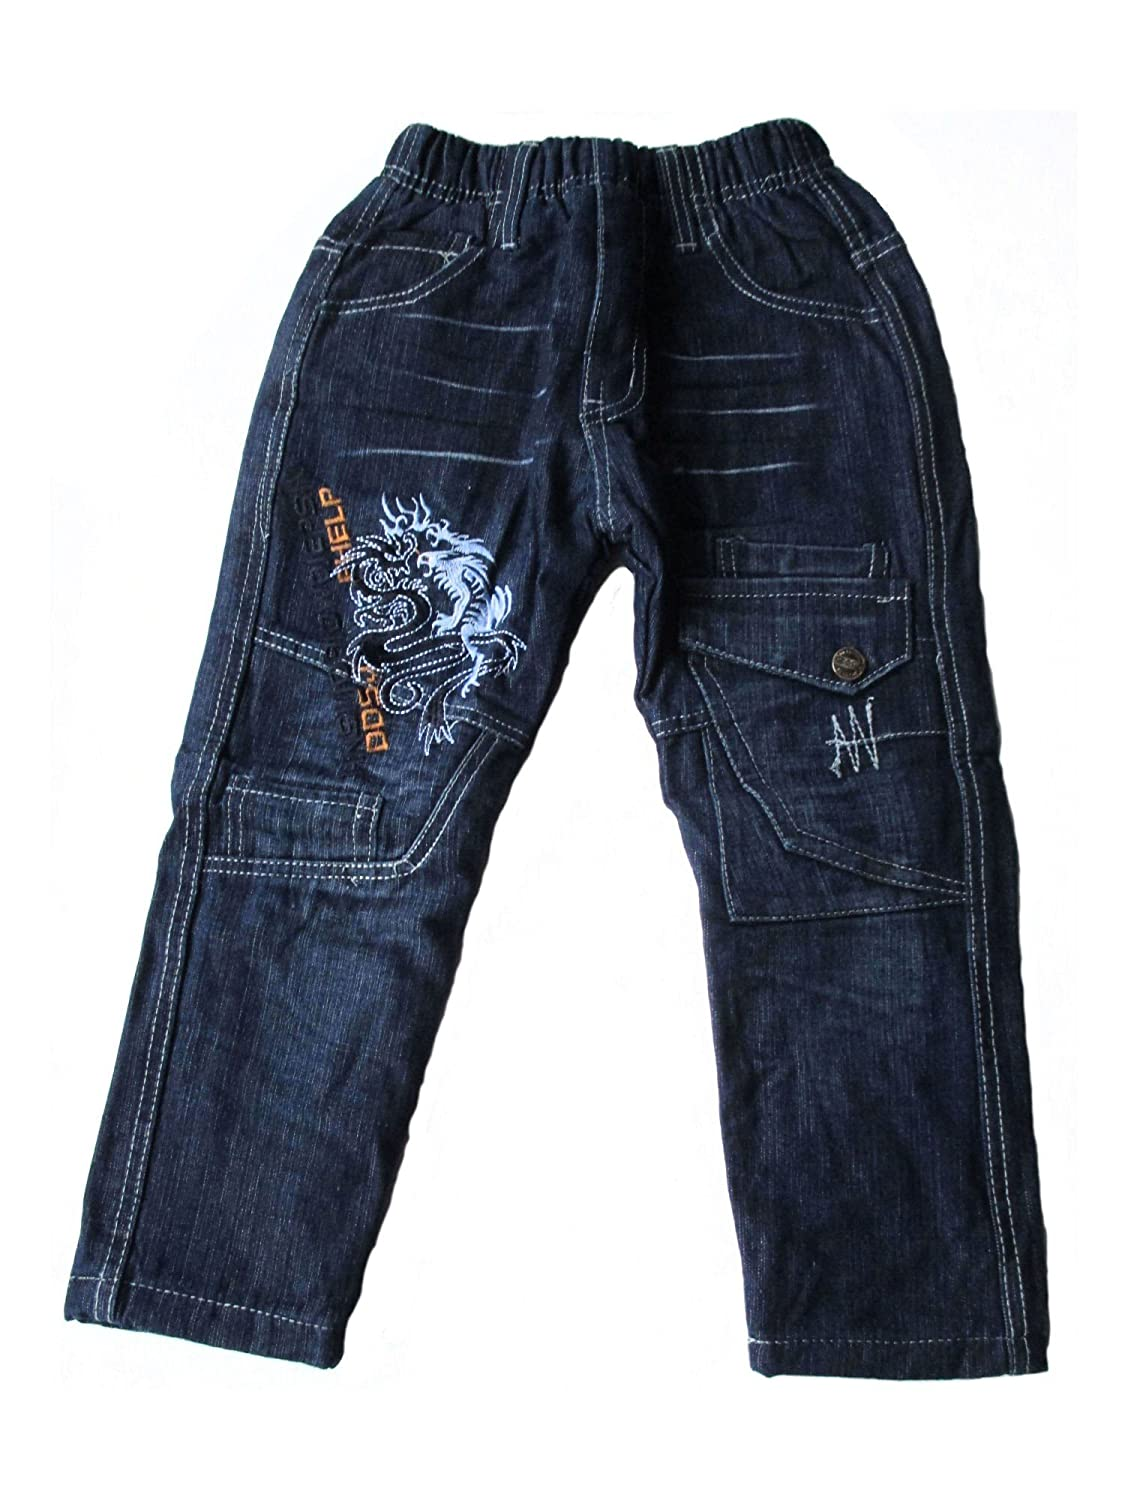 Kinder Jungen Thermo Jeans, Thermojeans, Thermohose, gefüttert, mit Motiv 'Drache', blau, AM-KI-JU-Thermo-RB603-bl